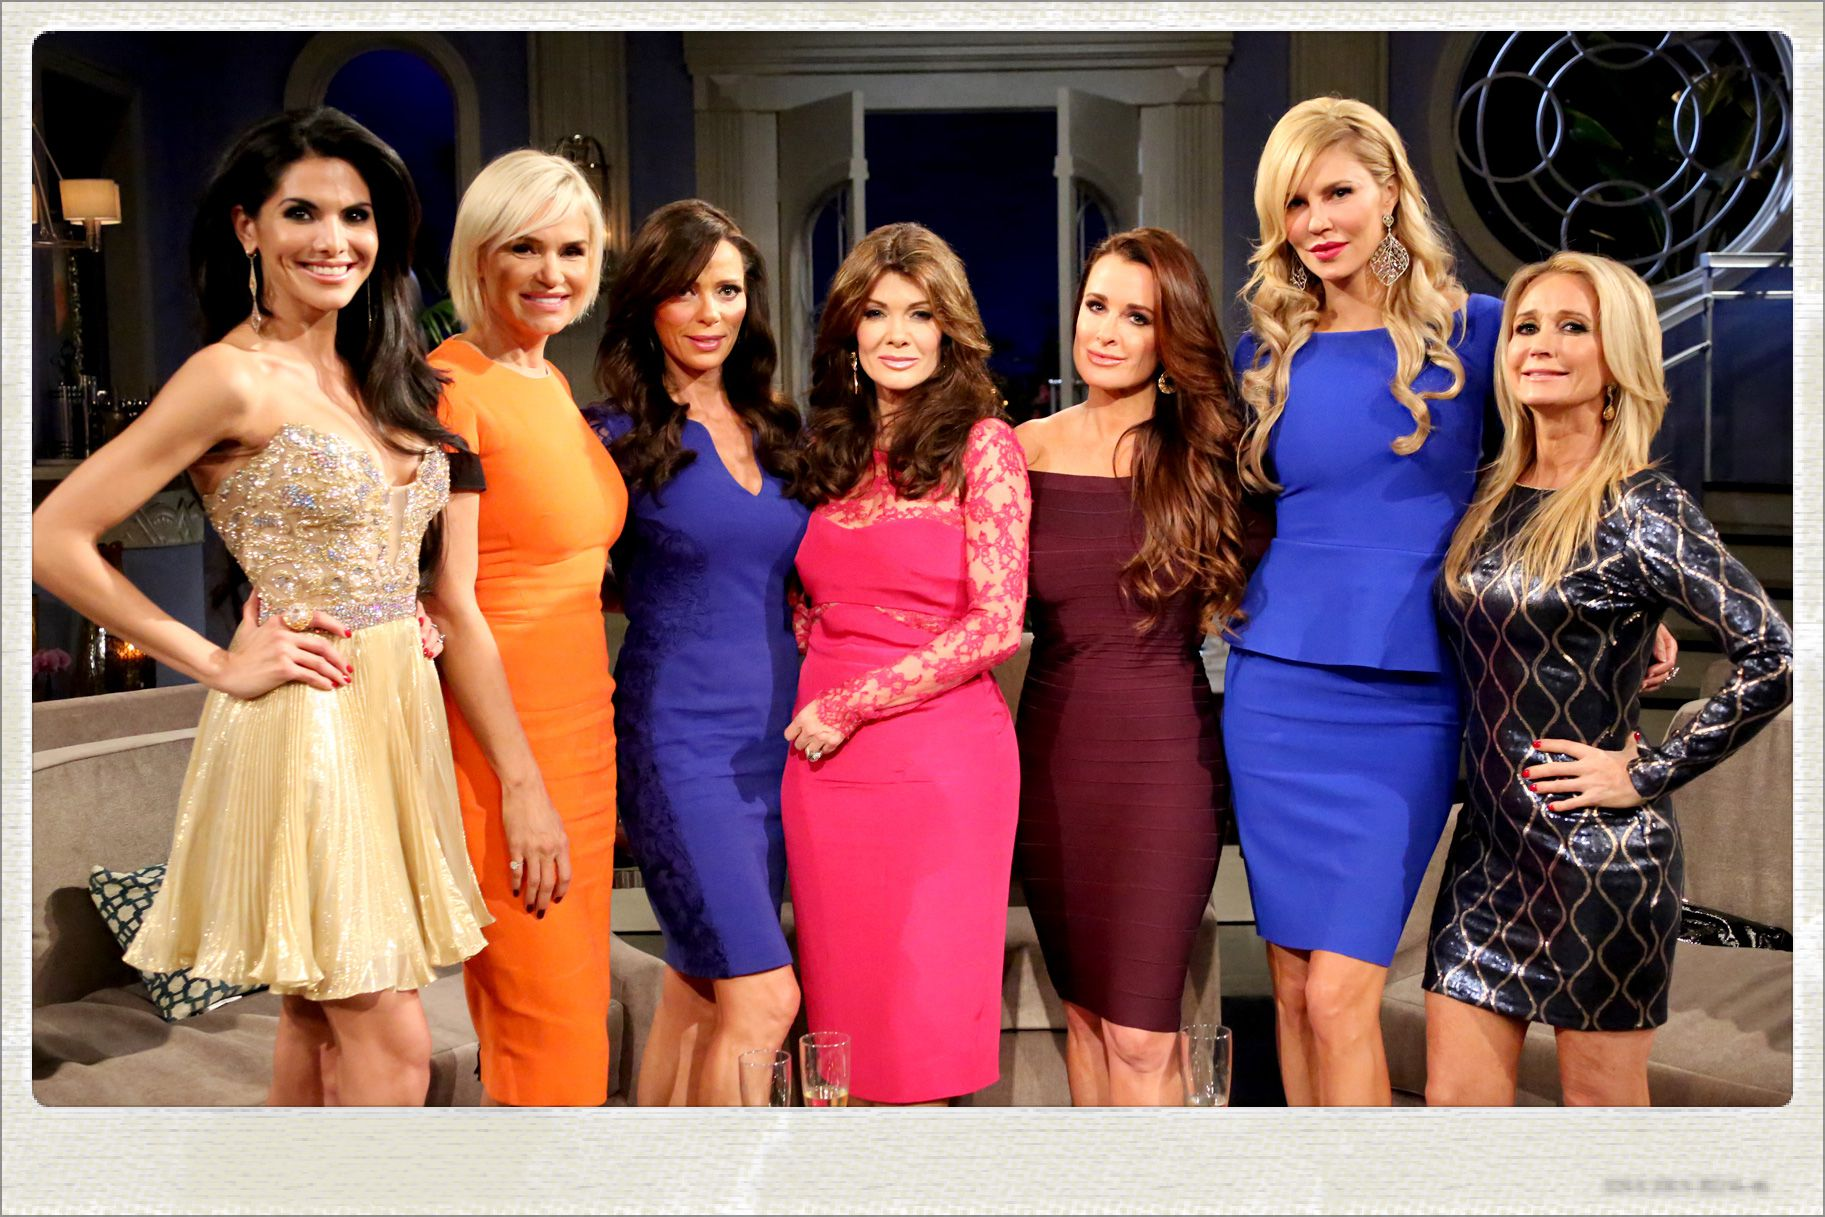 real-housewives-of-beverly-hills-season-4-reunion-bts-07_0-with-frame